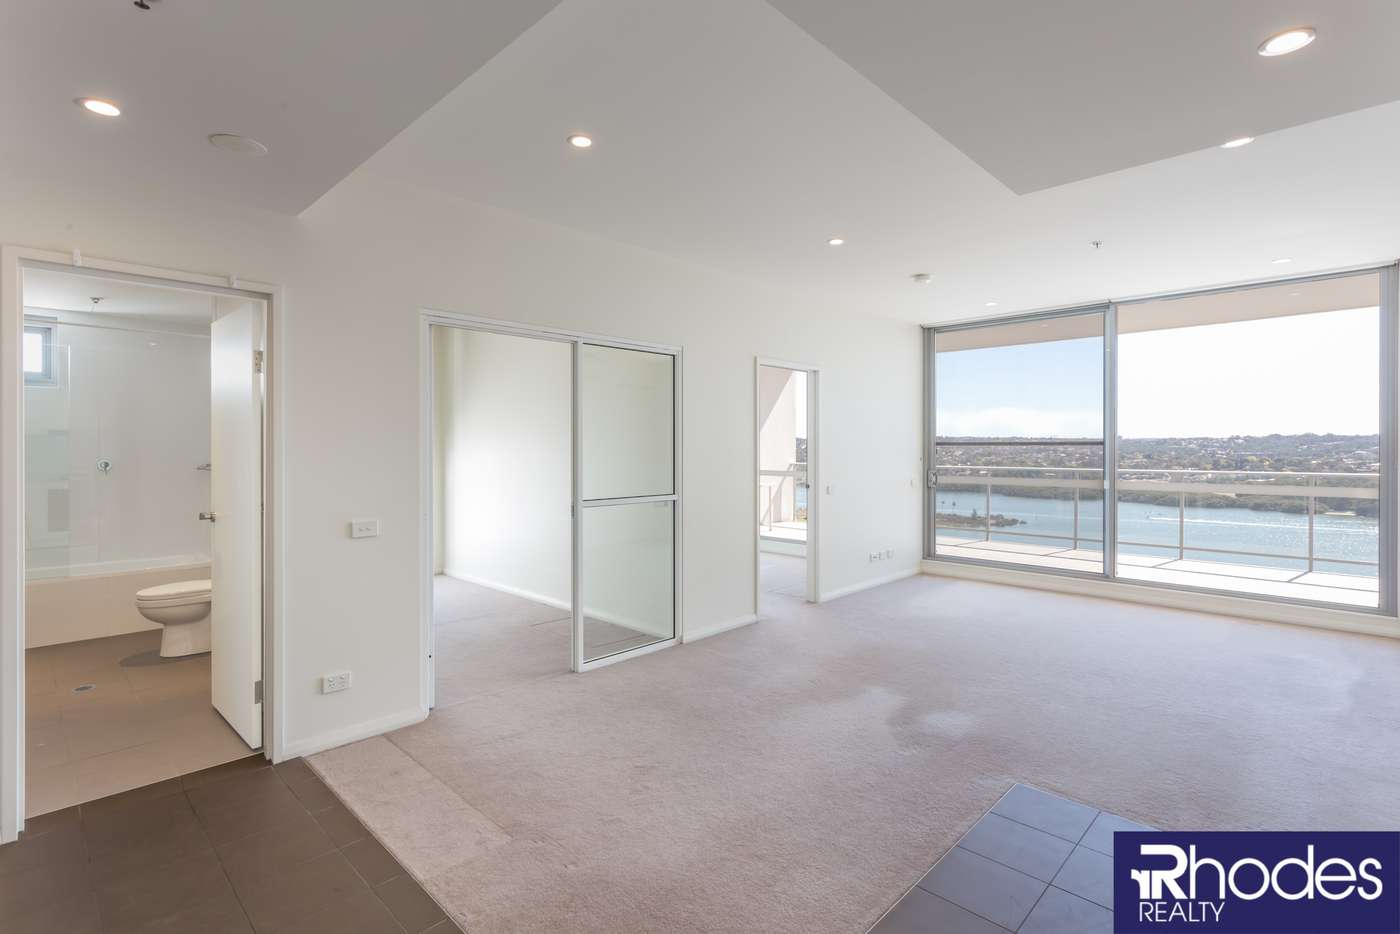 Sixth view of Homely apartment listing, 1801/43 Shoreline Drive, Rhodes NSW 2138